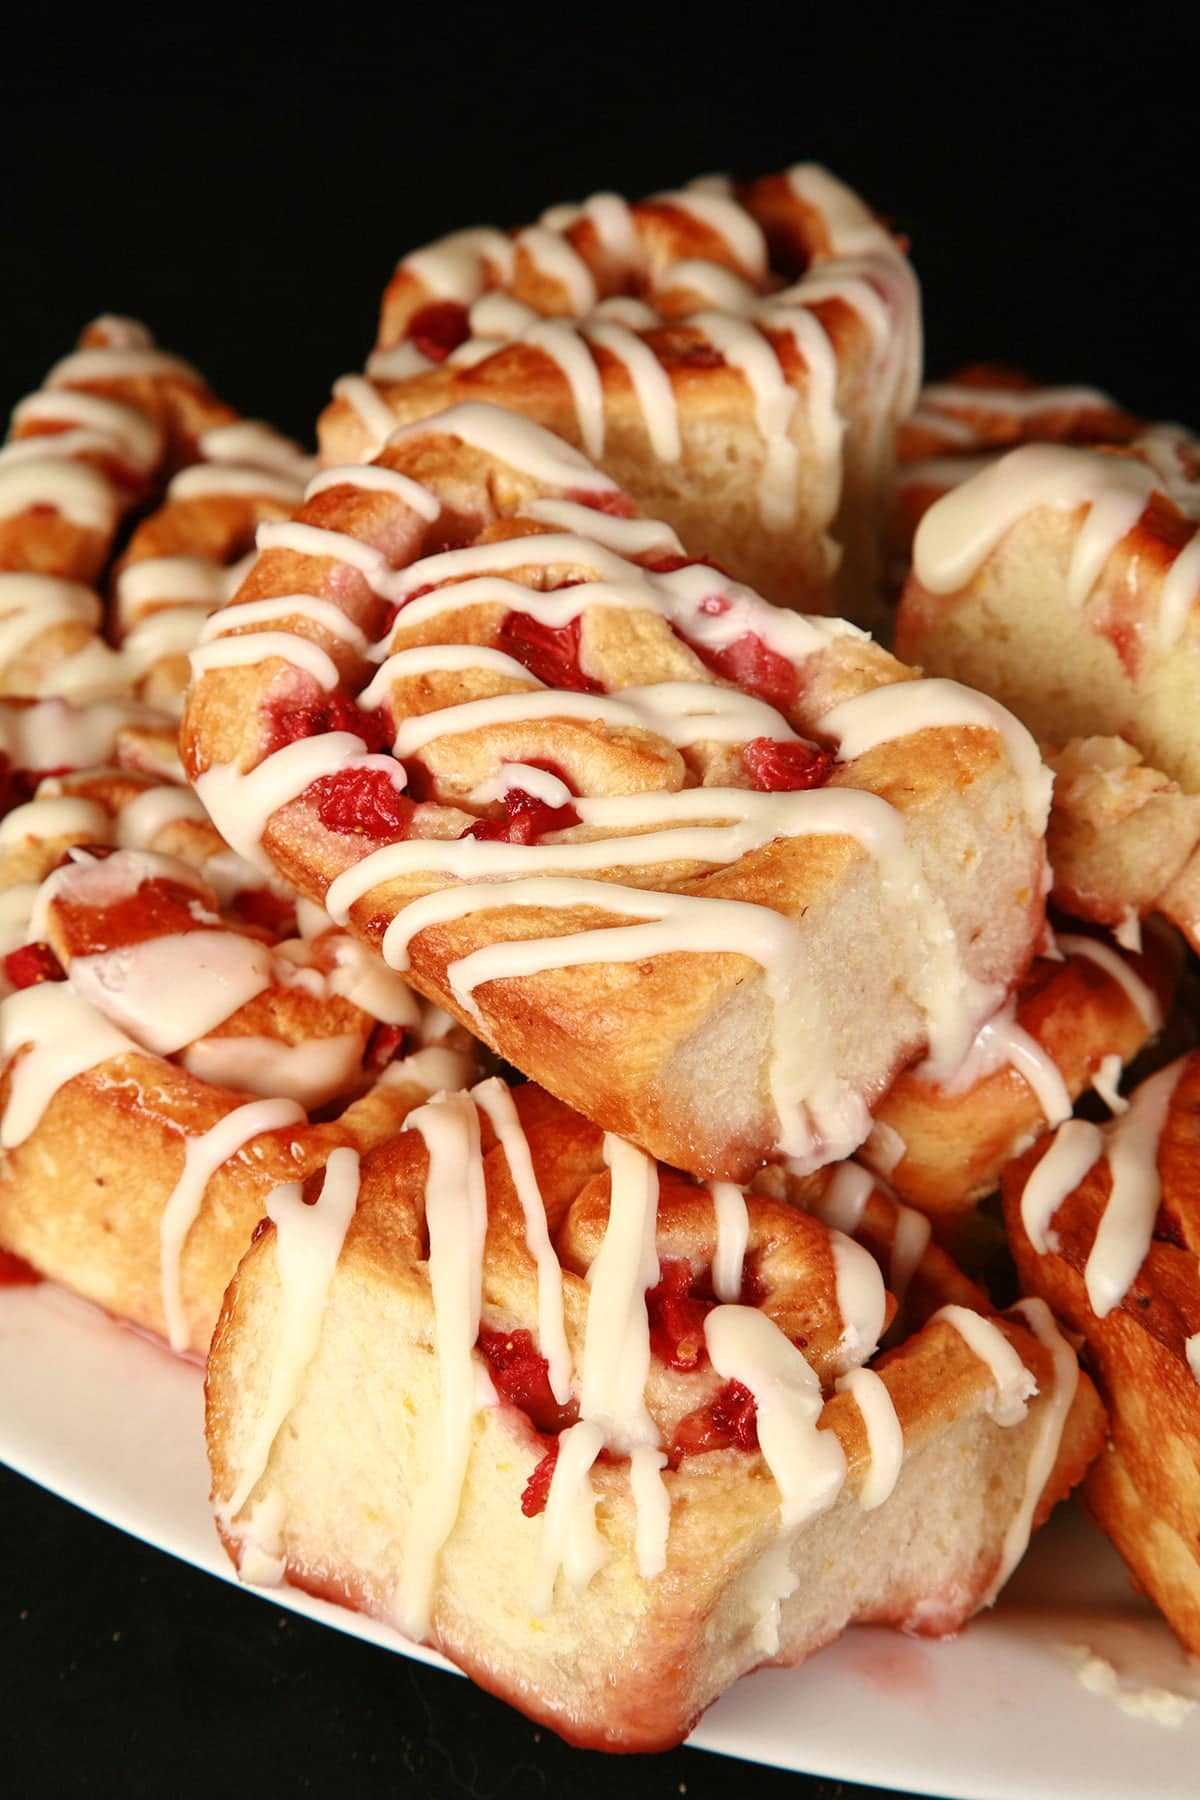 A plate stacked with orange strawberry rolls.